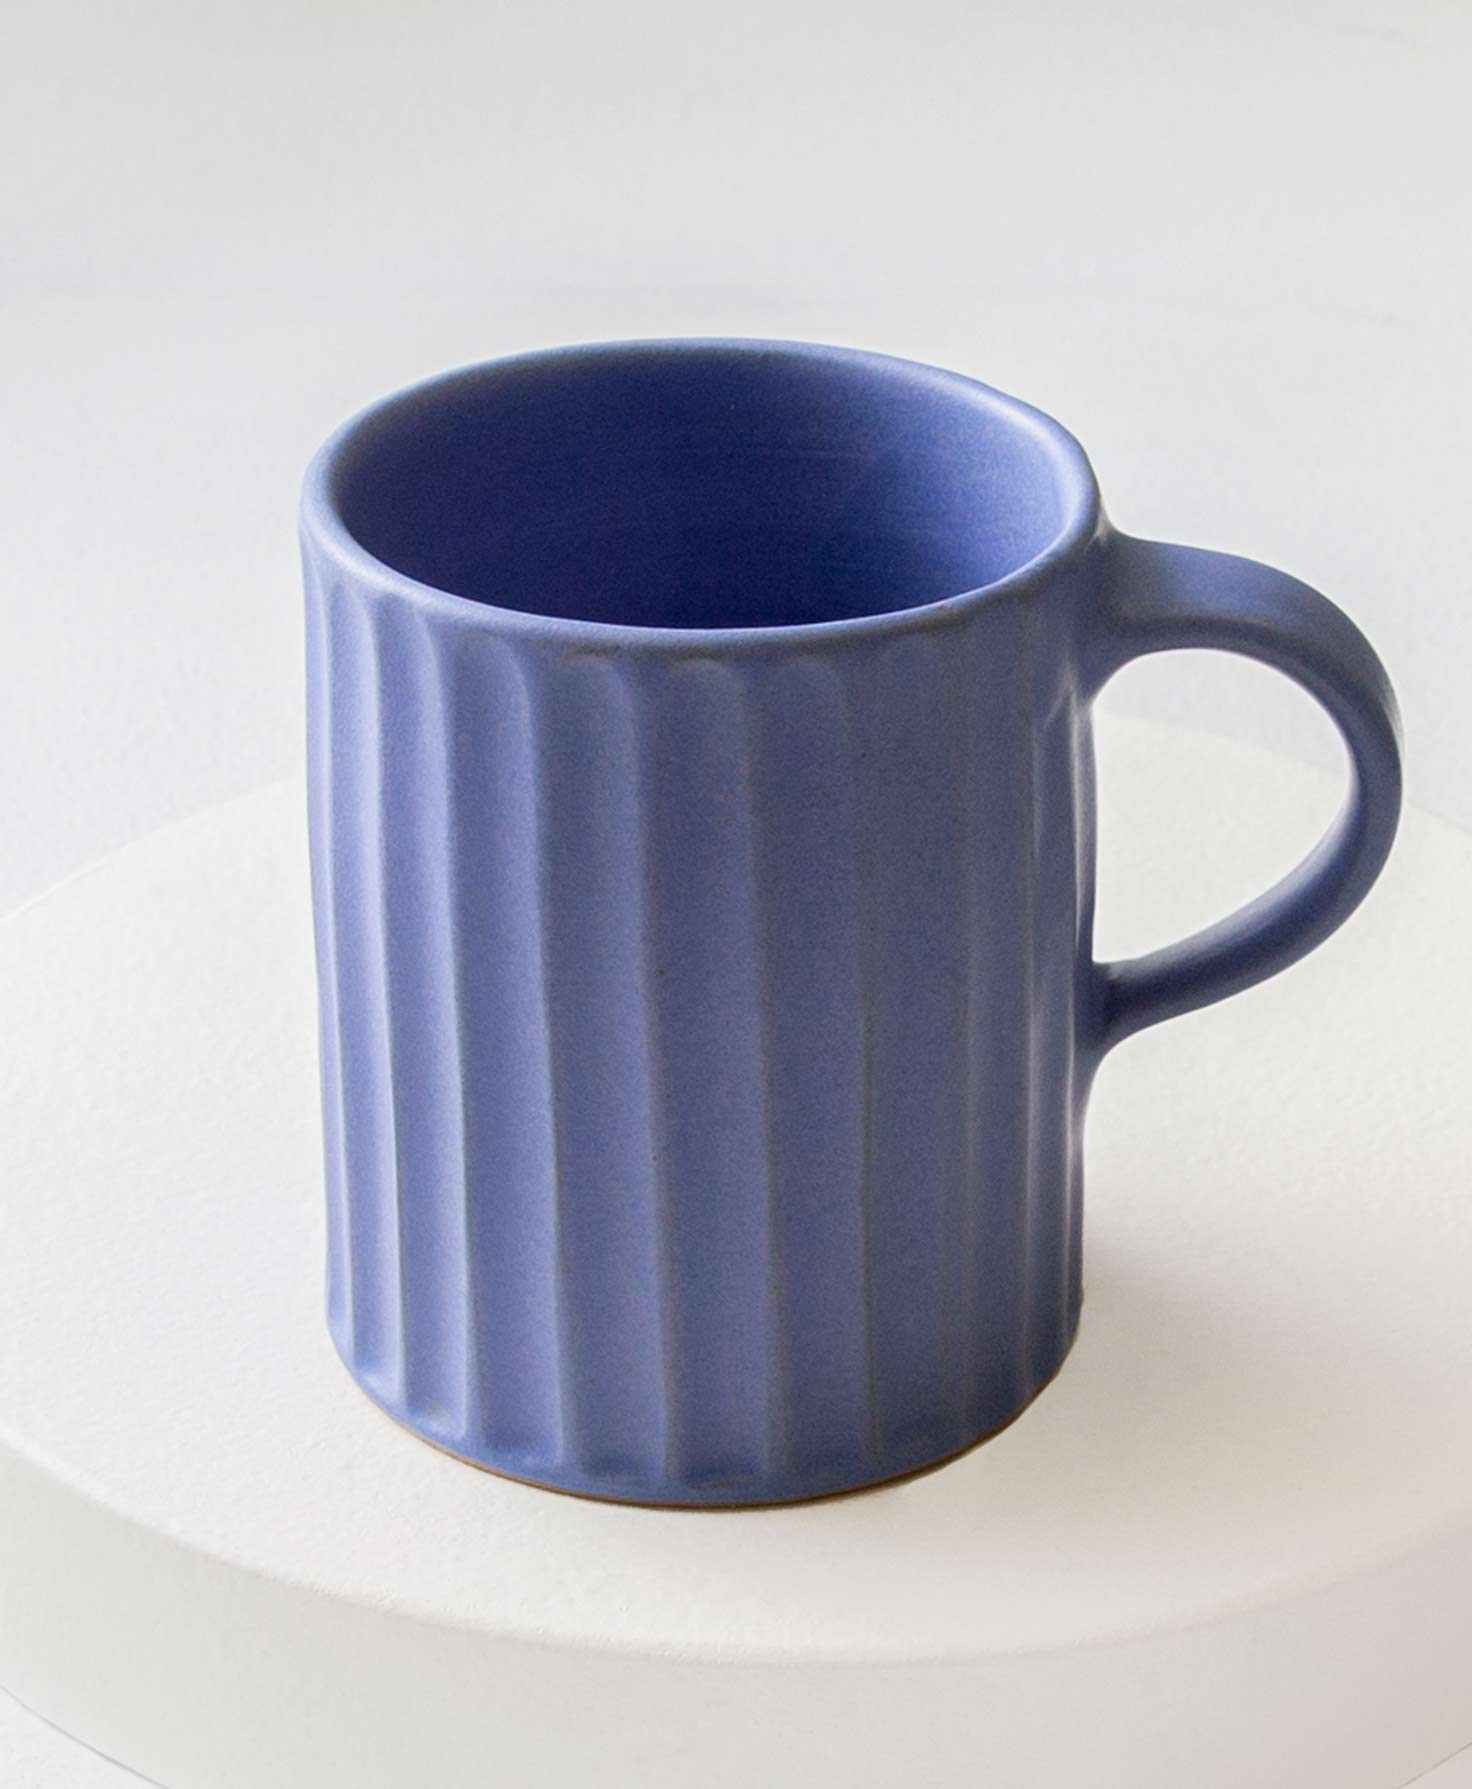 The Textured Ceramic Mug in Blue sits on a white surface. It is made of cobalt blue stoneware and has a natural, handmade texture. All the way around the mug, vertical indentations run from the top to the bottom. The effect feels like someone ran their fingers from the top of the clay to the bottom, leaving regular rows of indentations. The mug has a handle made of the same blue stoneware.